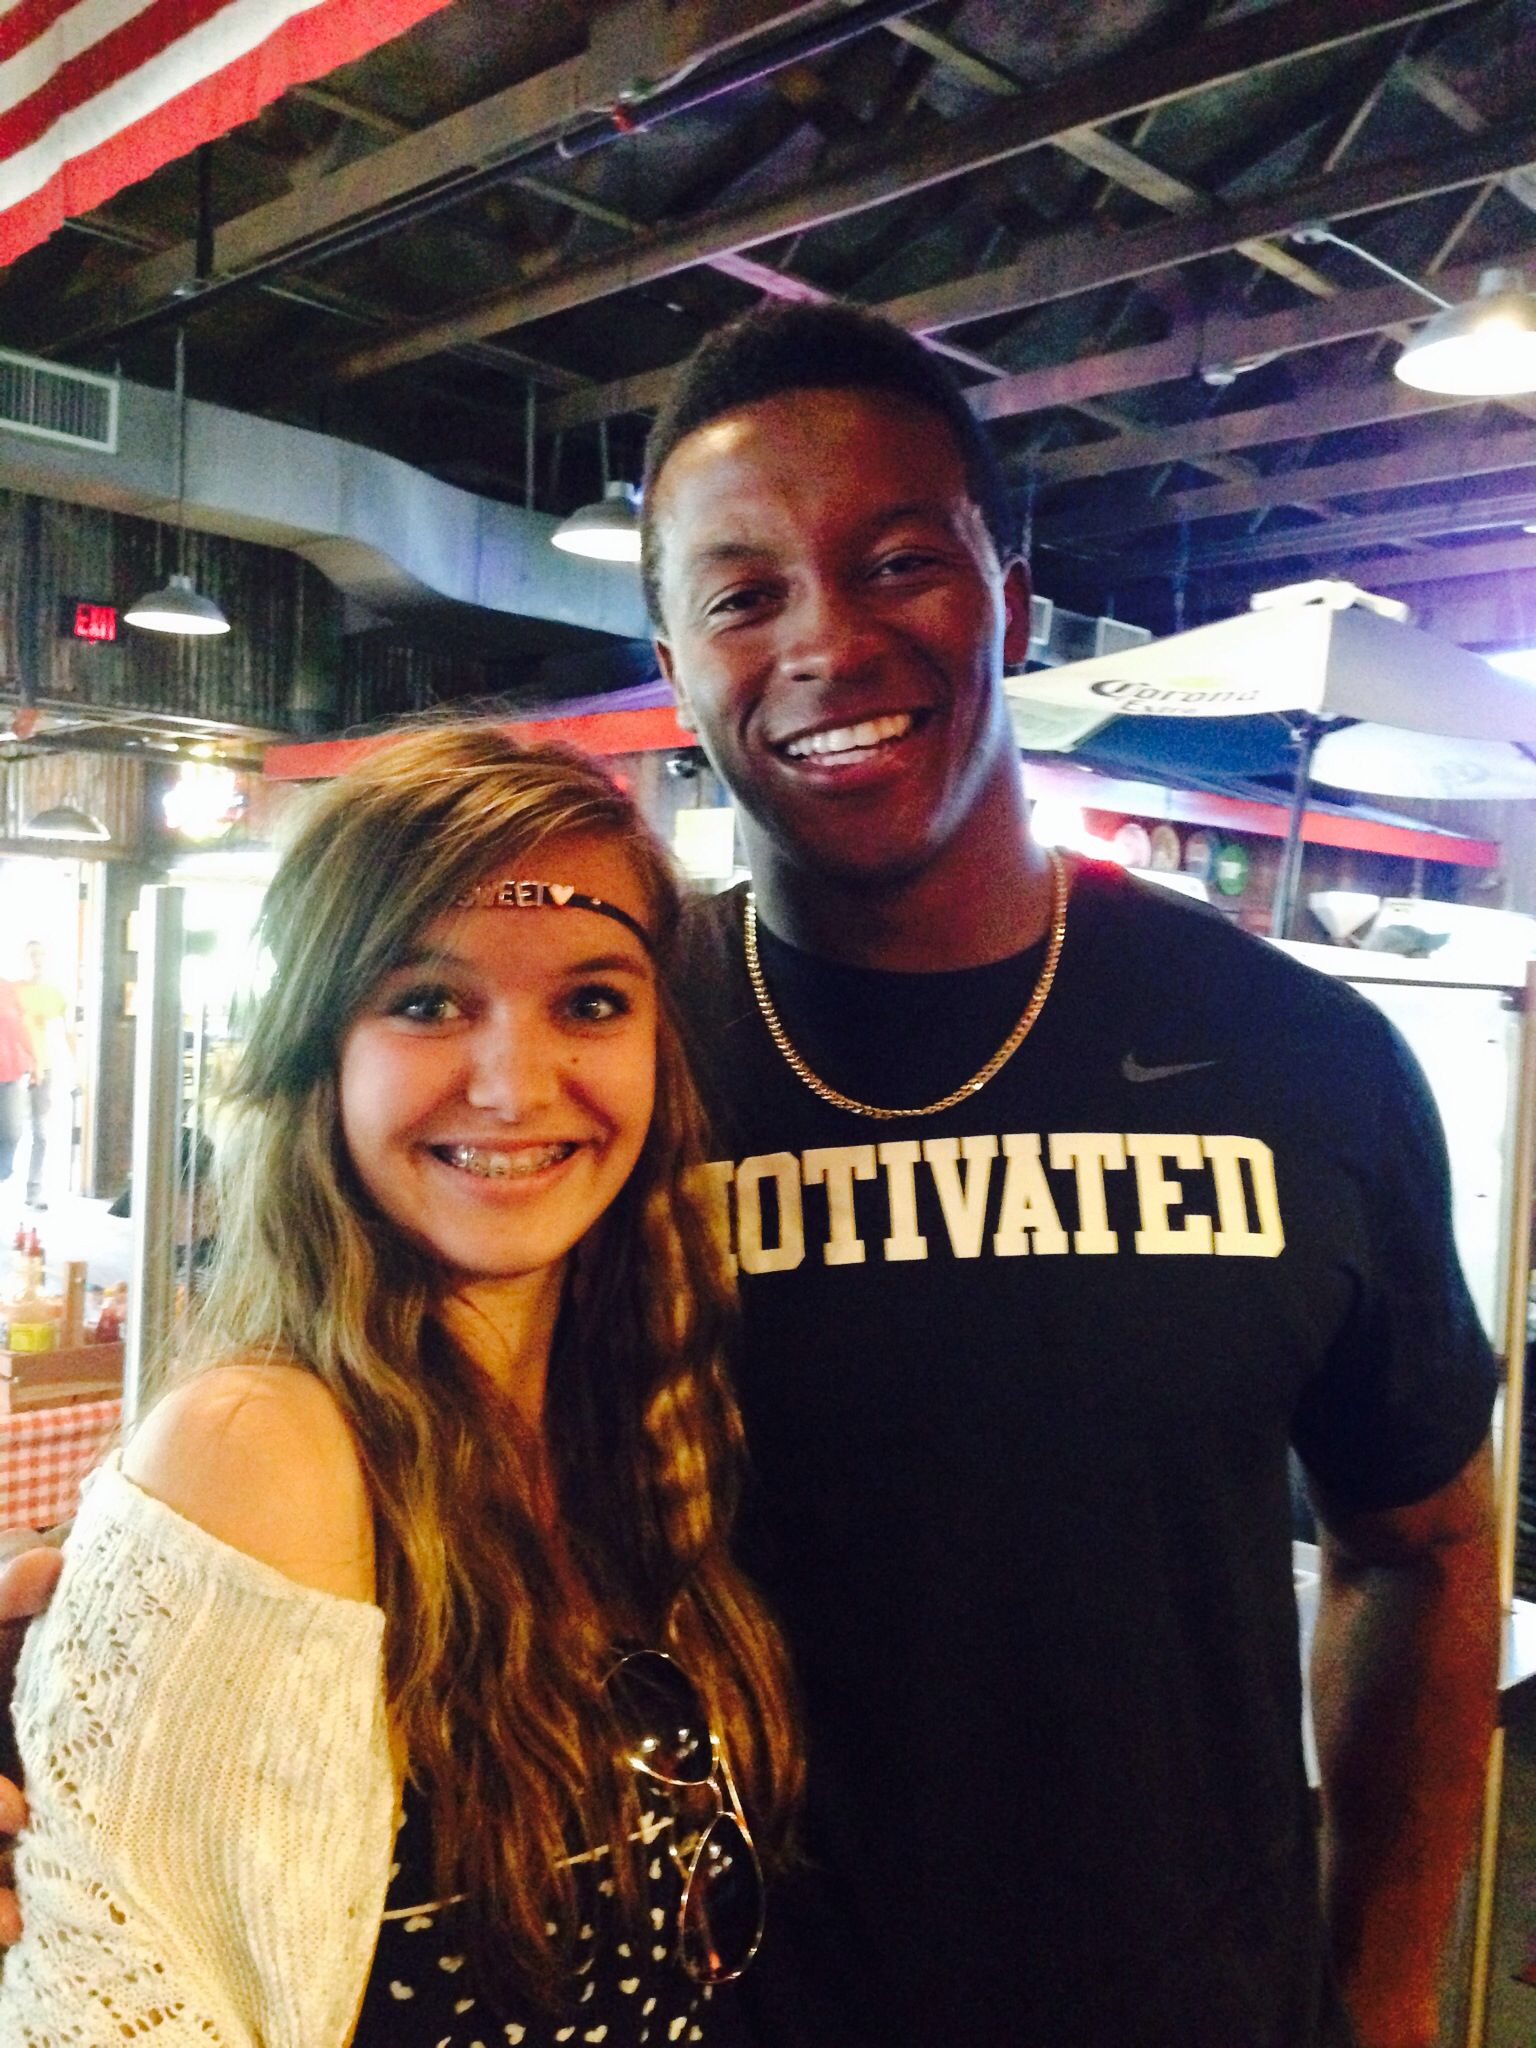 Today out at lunch I got to meet and talk to demaryius Thomas! He is a bronco football player! He was so cool! Today was a good day